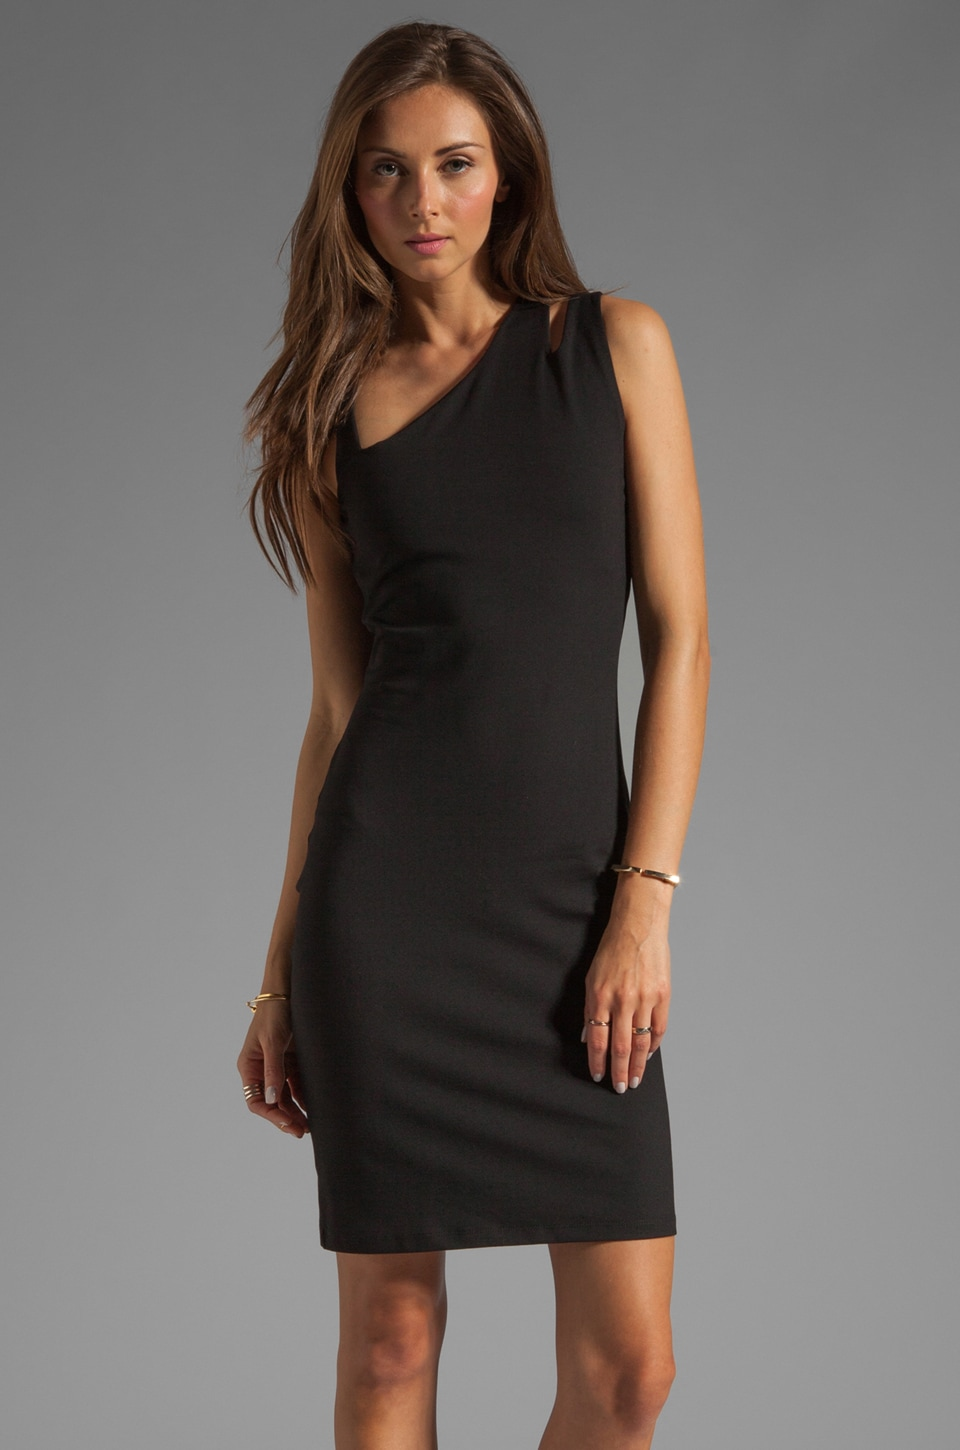 Susana Monaco Illana Dress in Black